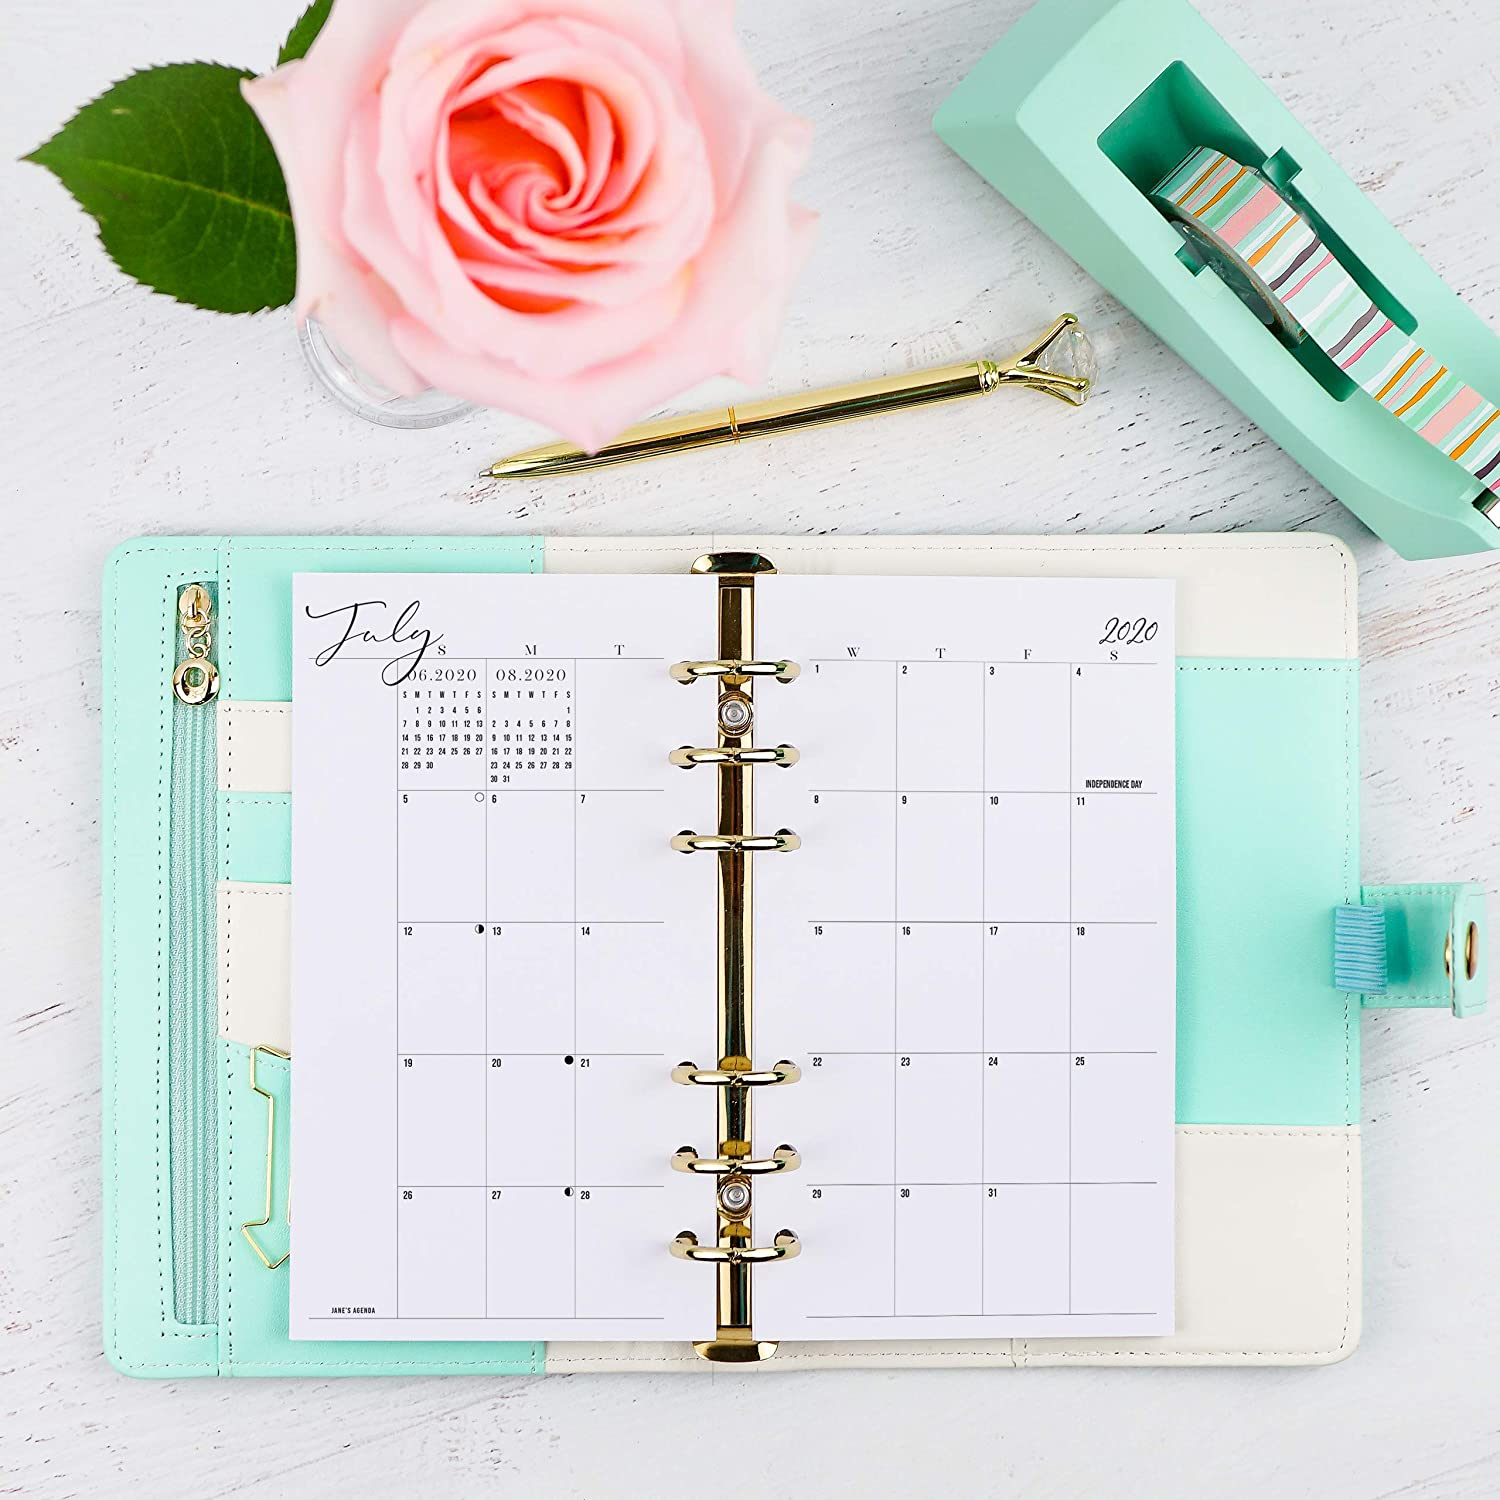 2020 Dated Weekly Refill Pages for Personal Size Ring Bound Systems Monthly Planner Inserts Planner not included 3.75x6.75 inches Size 2